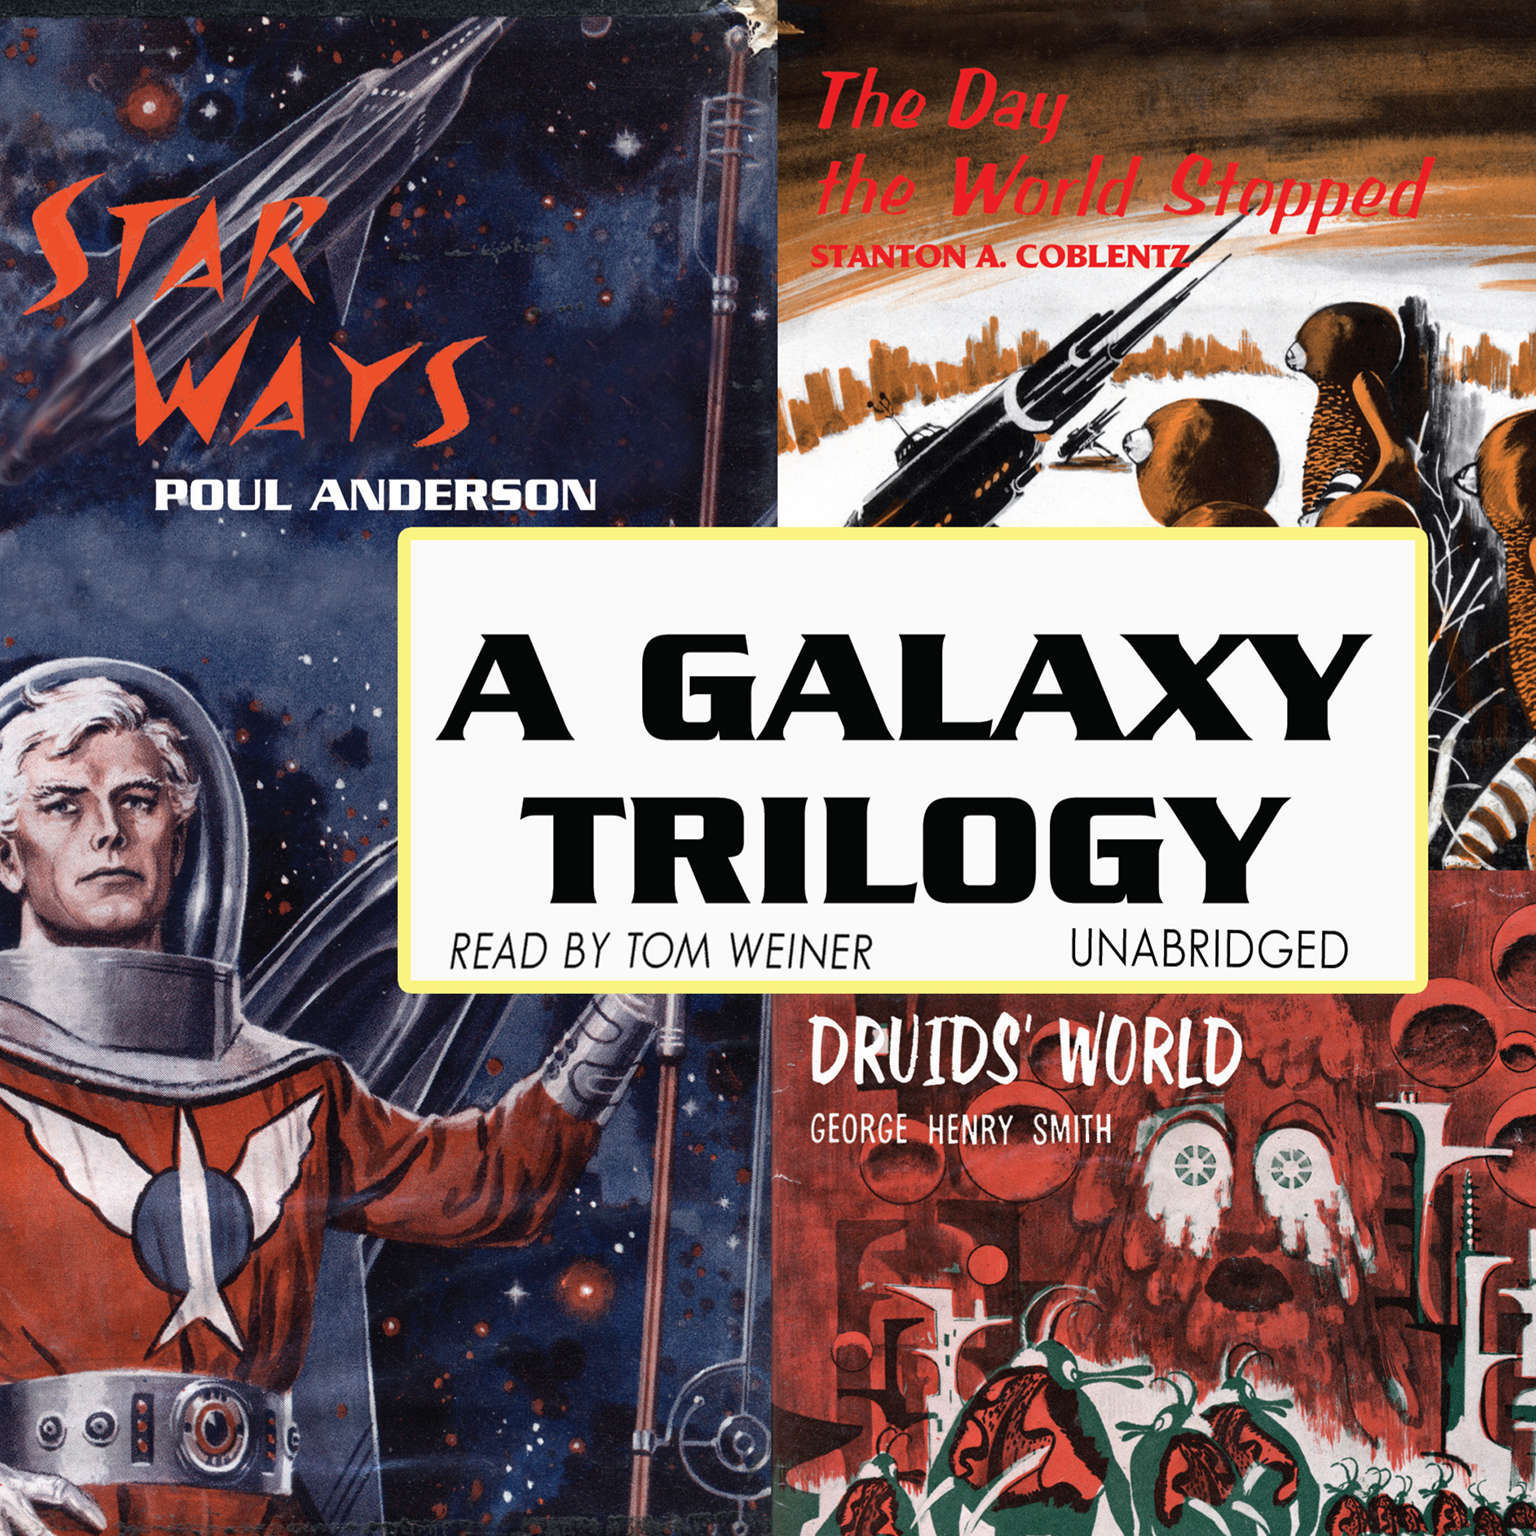 Printable A Galaxy Trilogy, Vol. 1: Star Ways, Druids' World, and The Day the World Stopped Audiobook Cover Art